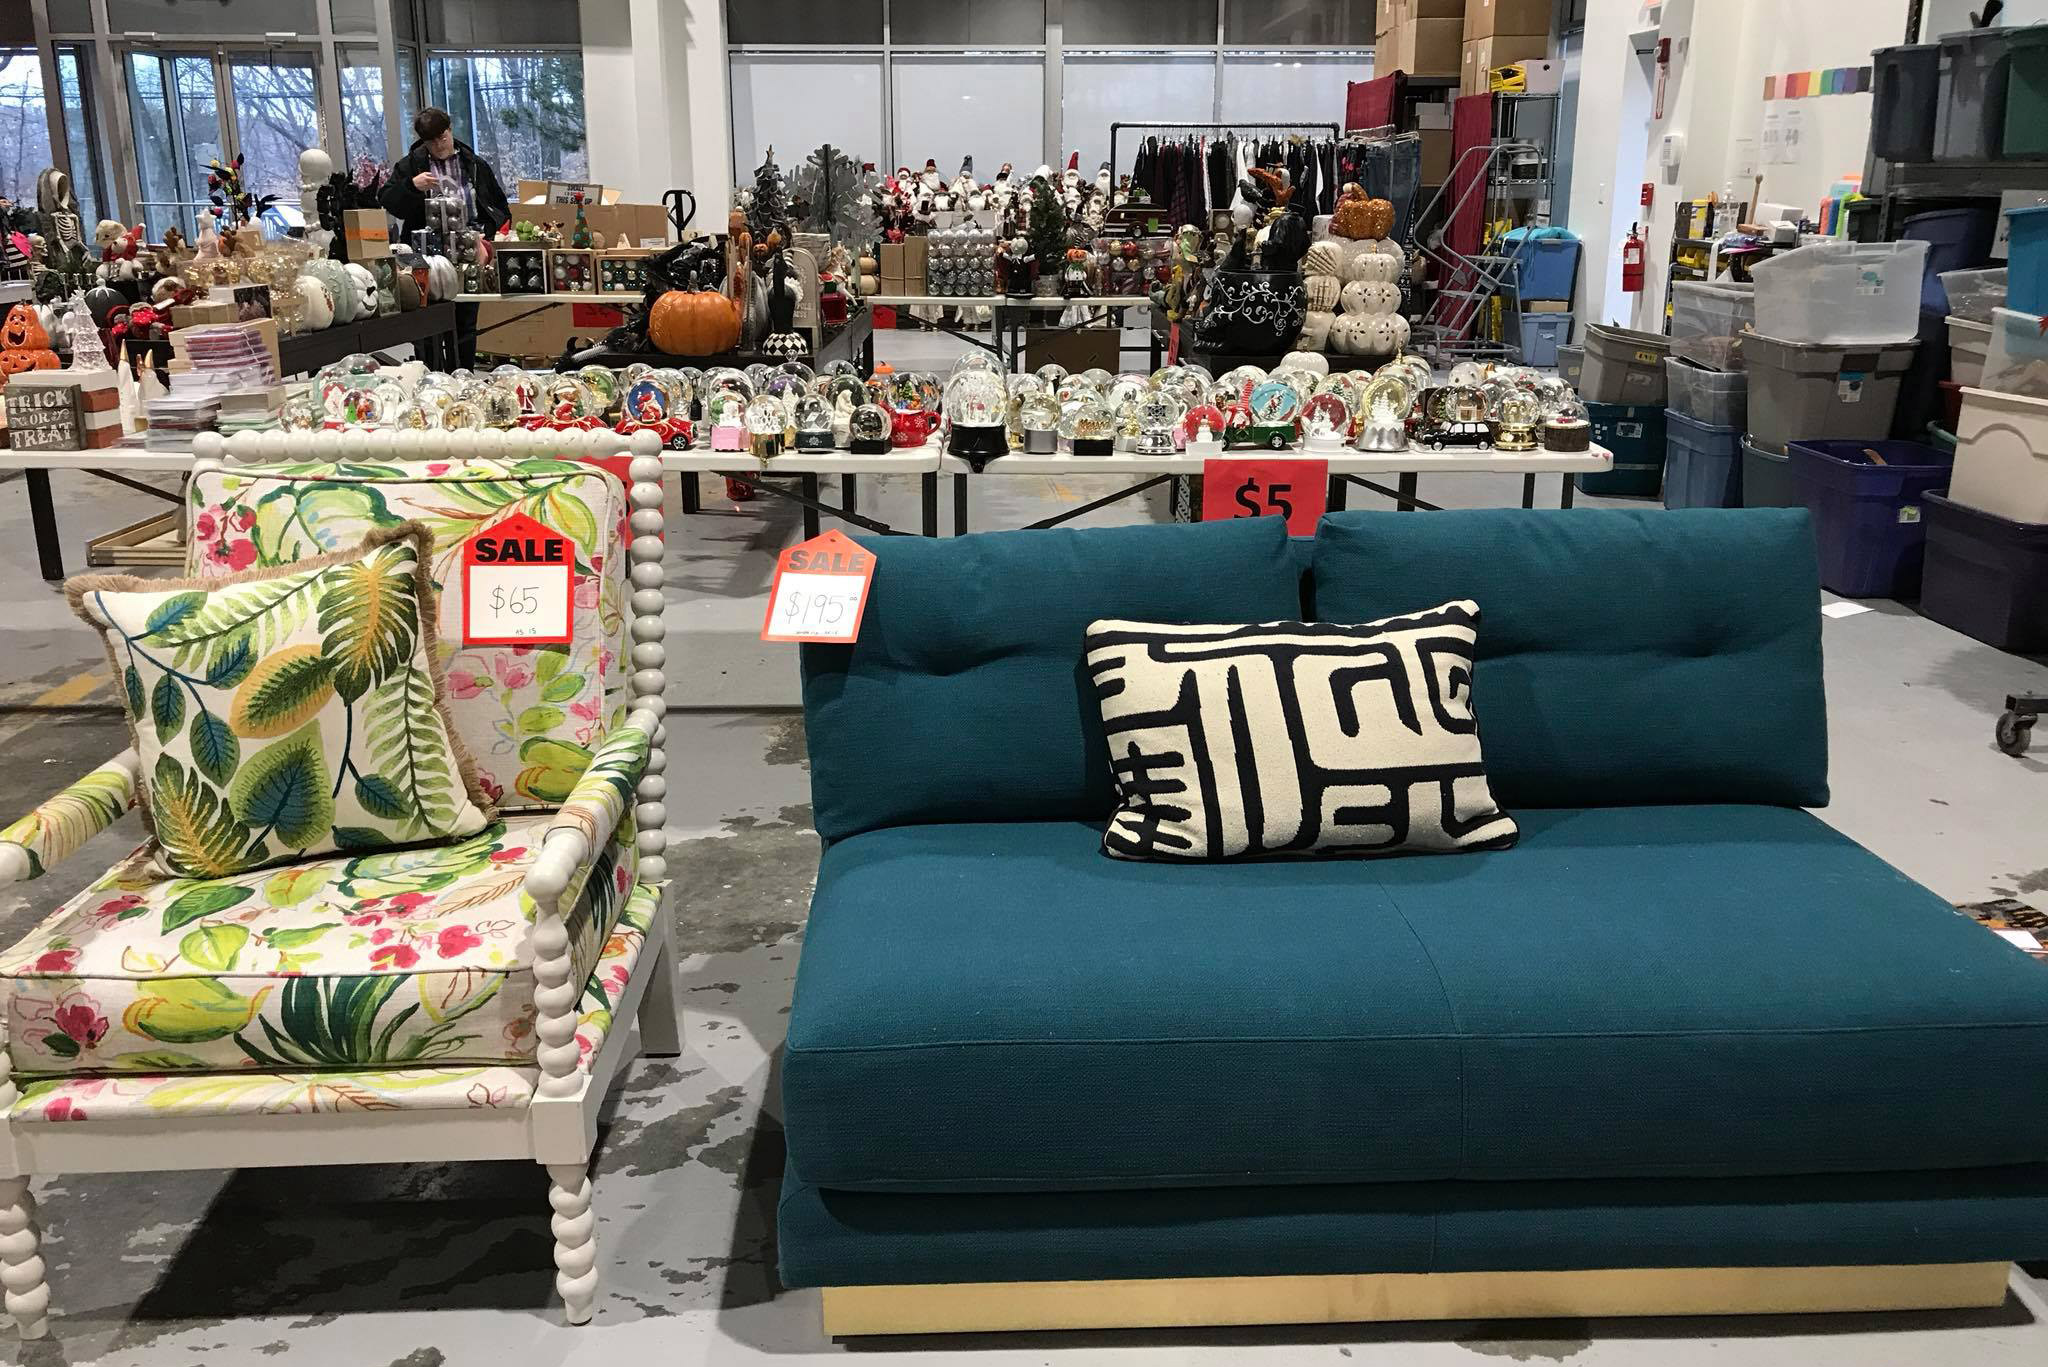 A couch, chair, and other knick knacks available for purchase at Boomerangs Special Edition